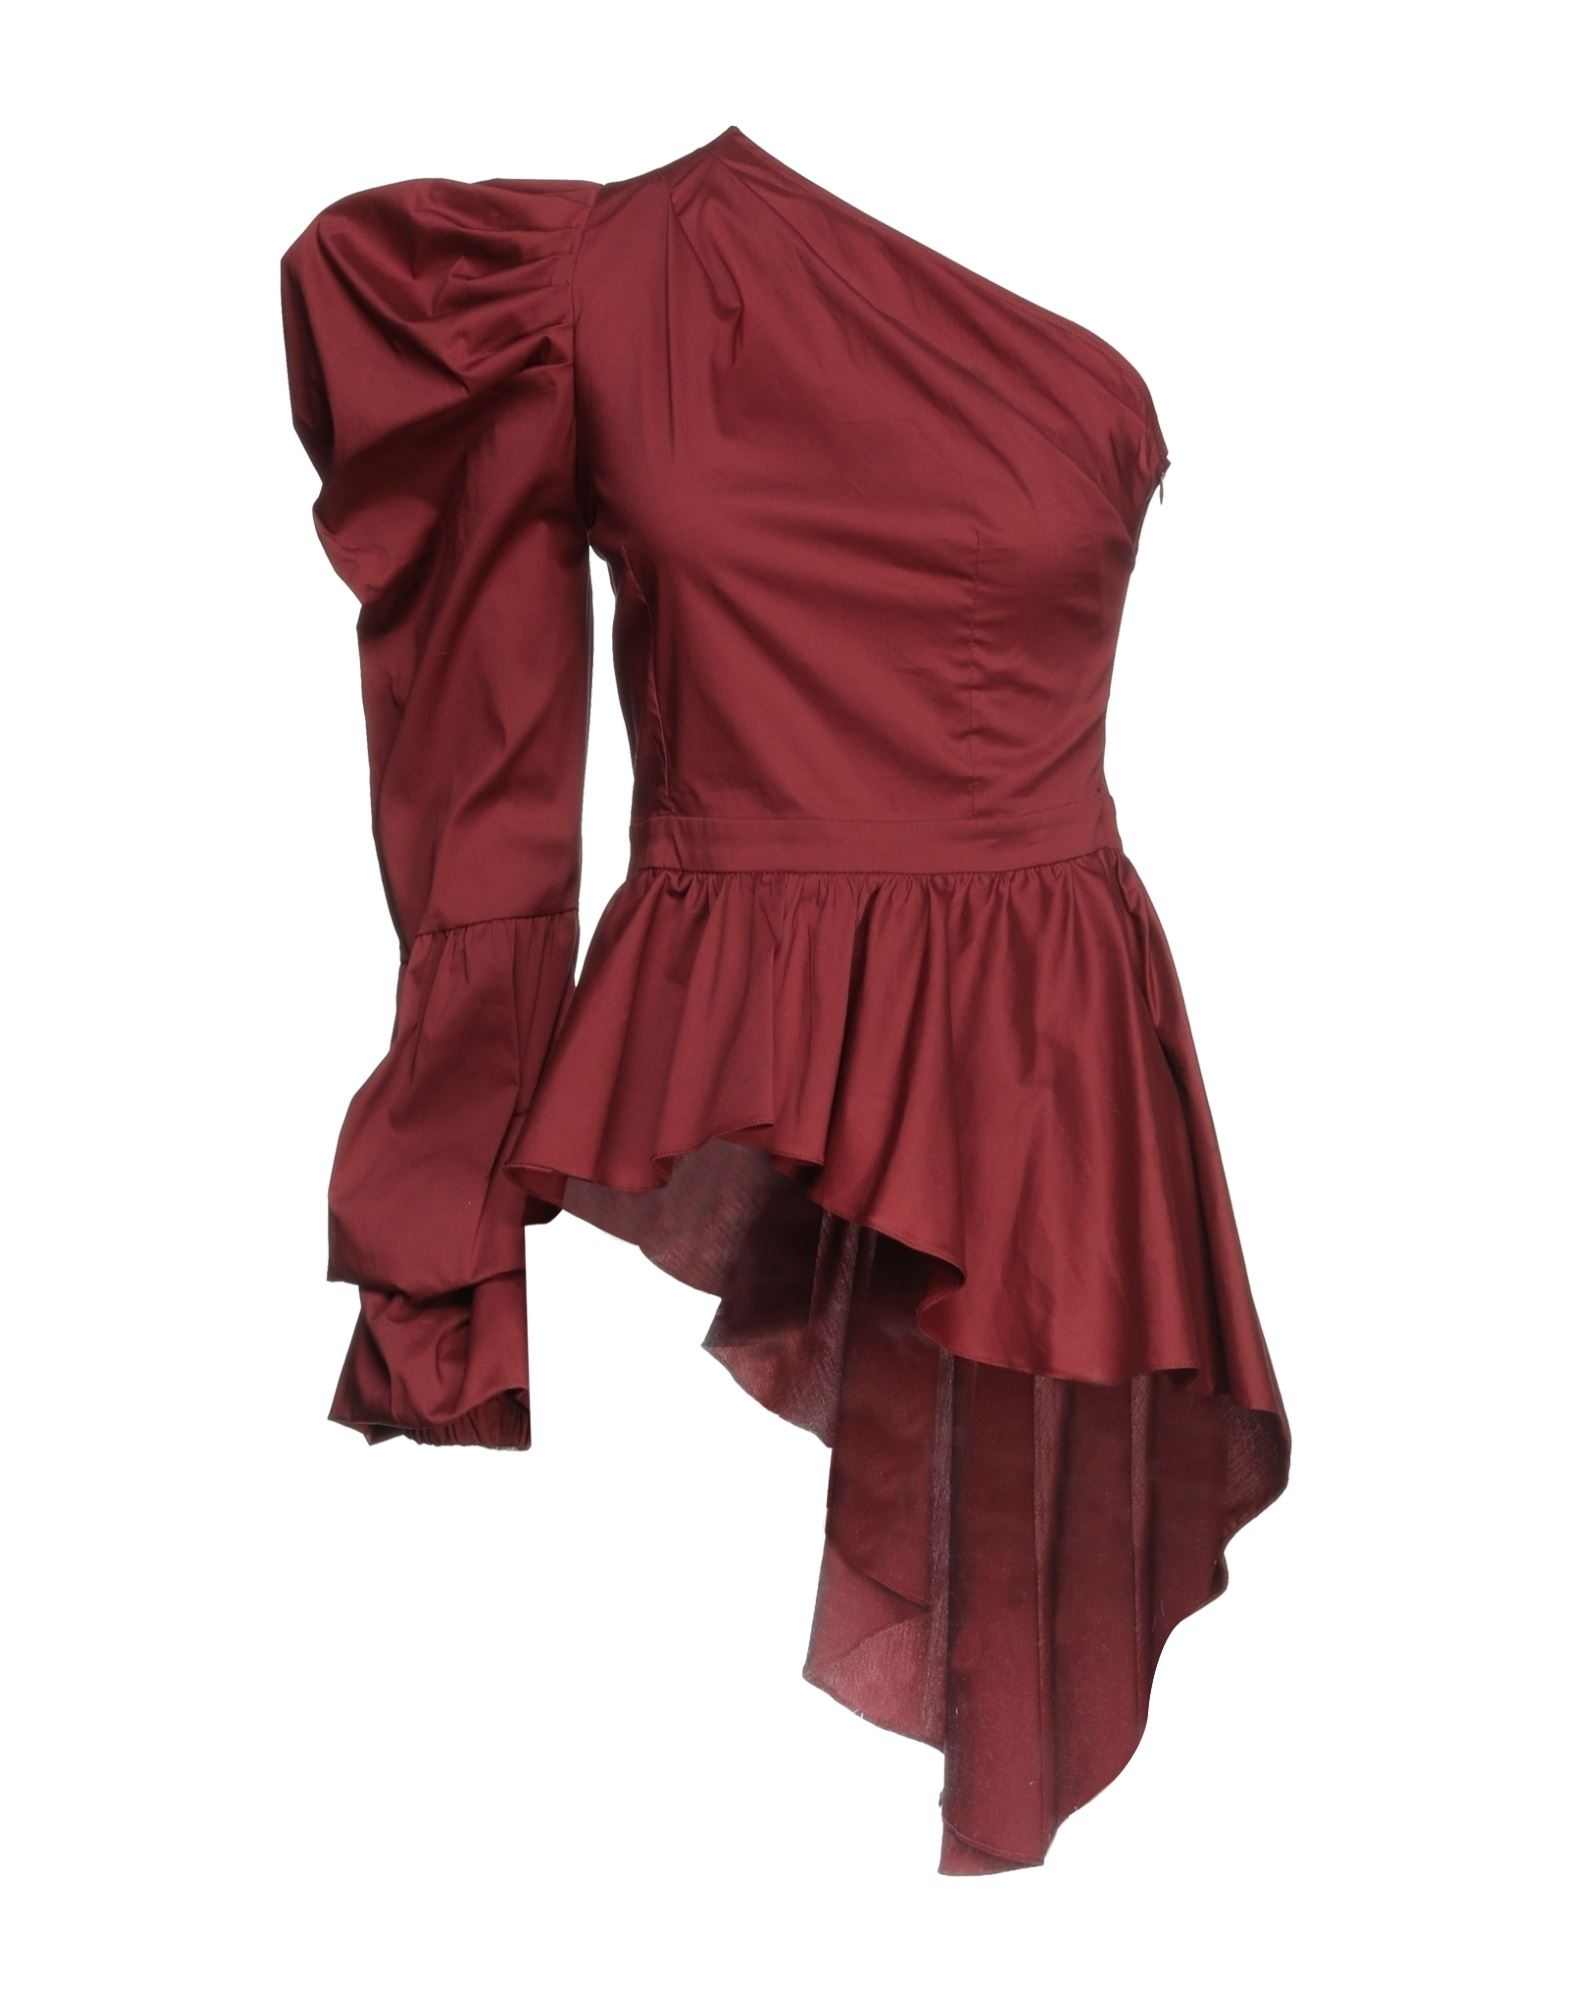 Actualee Blouses In Red